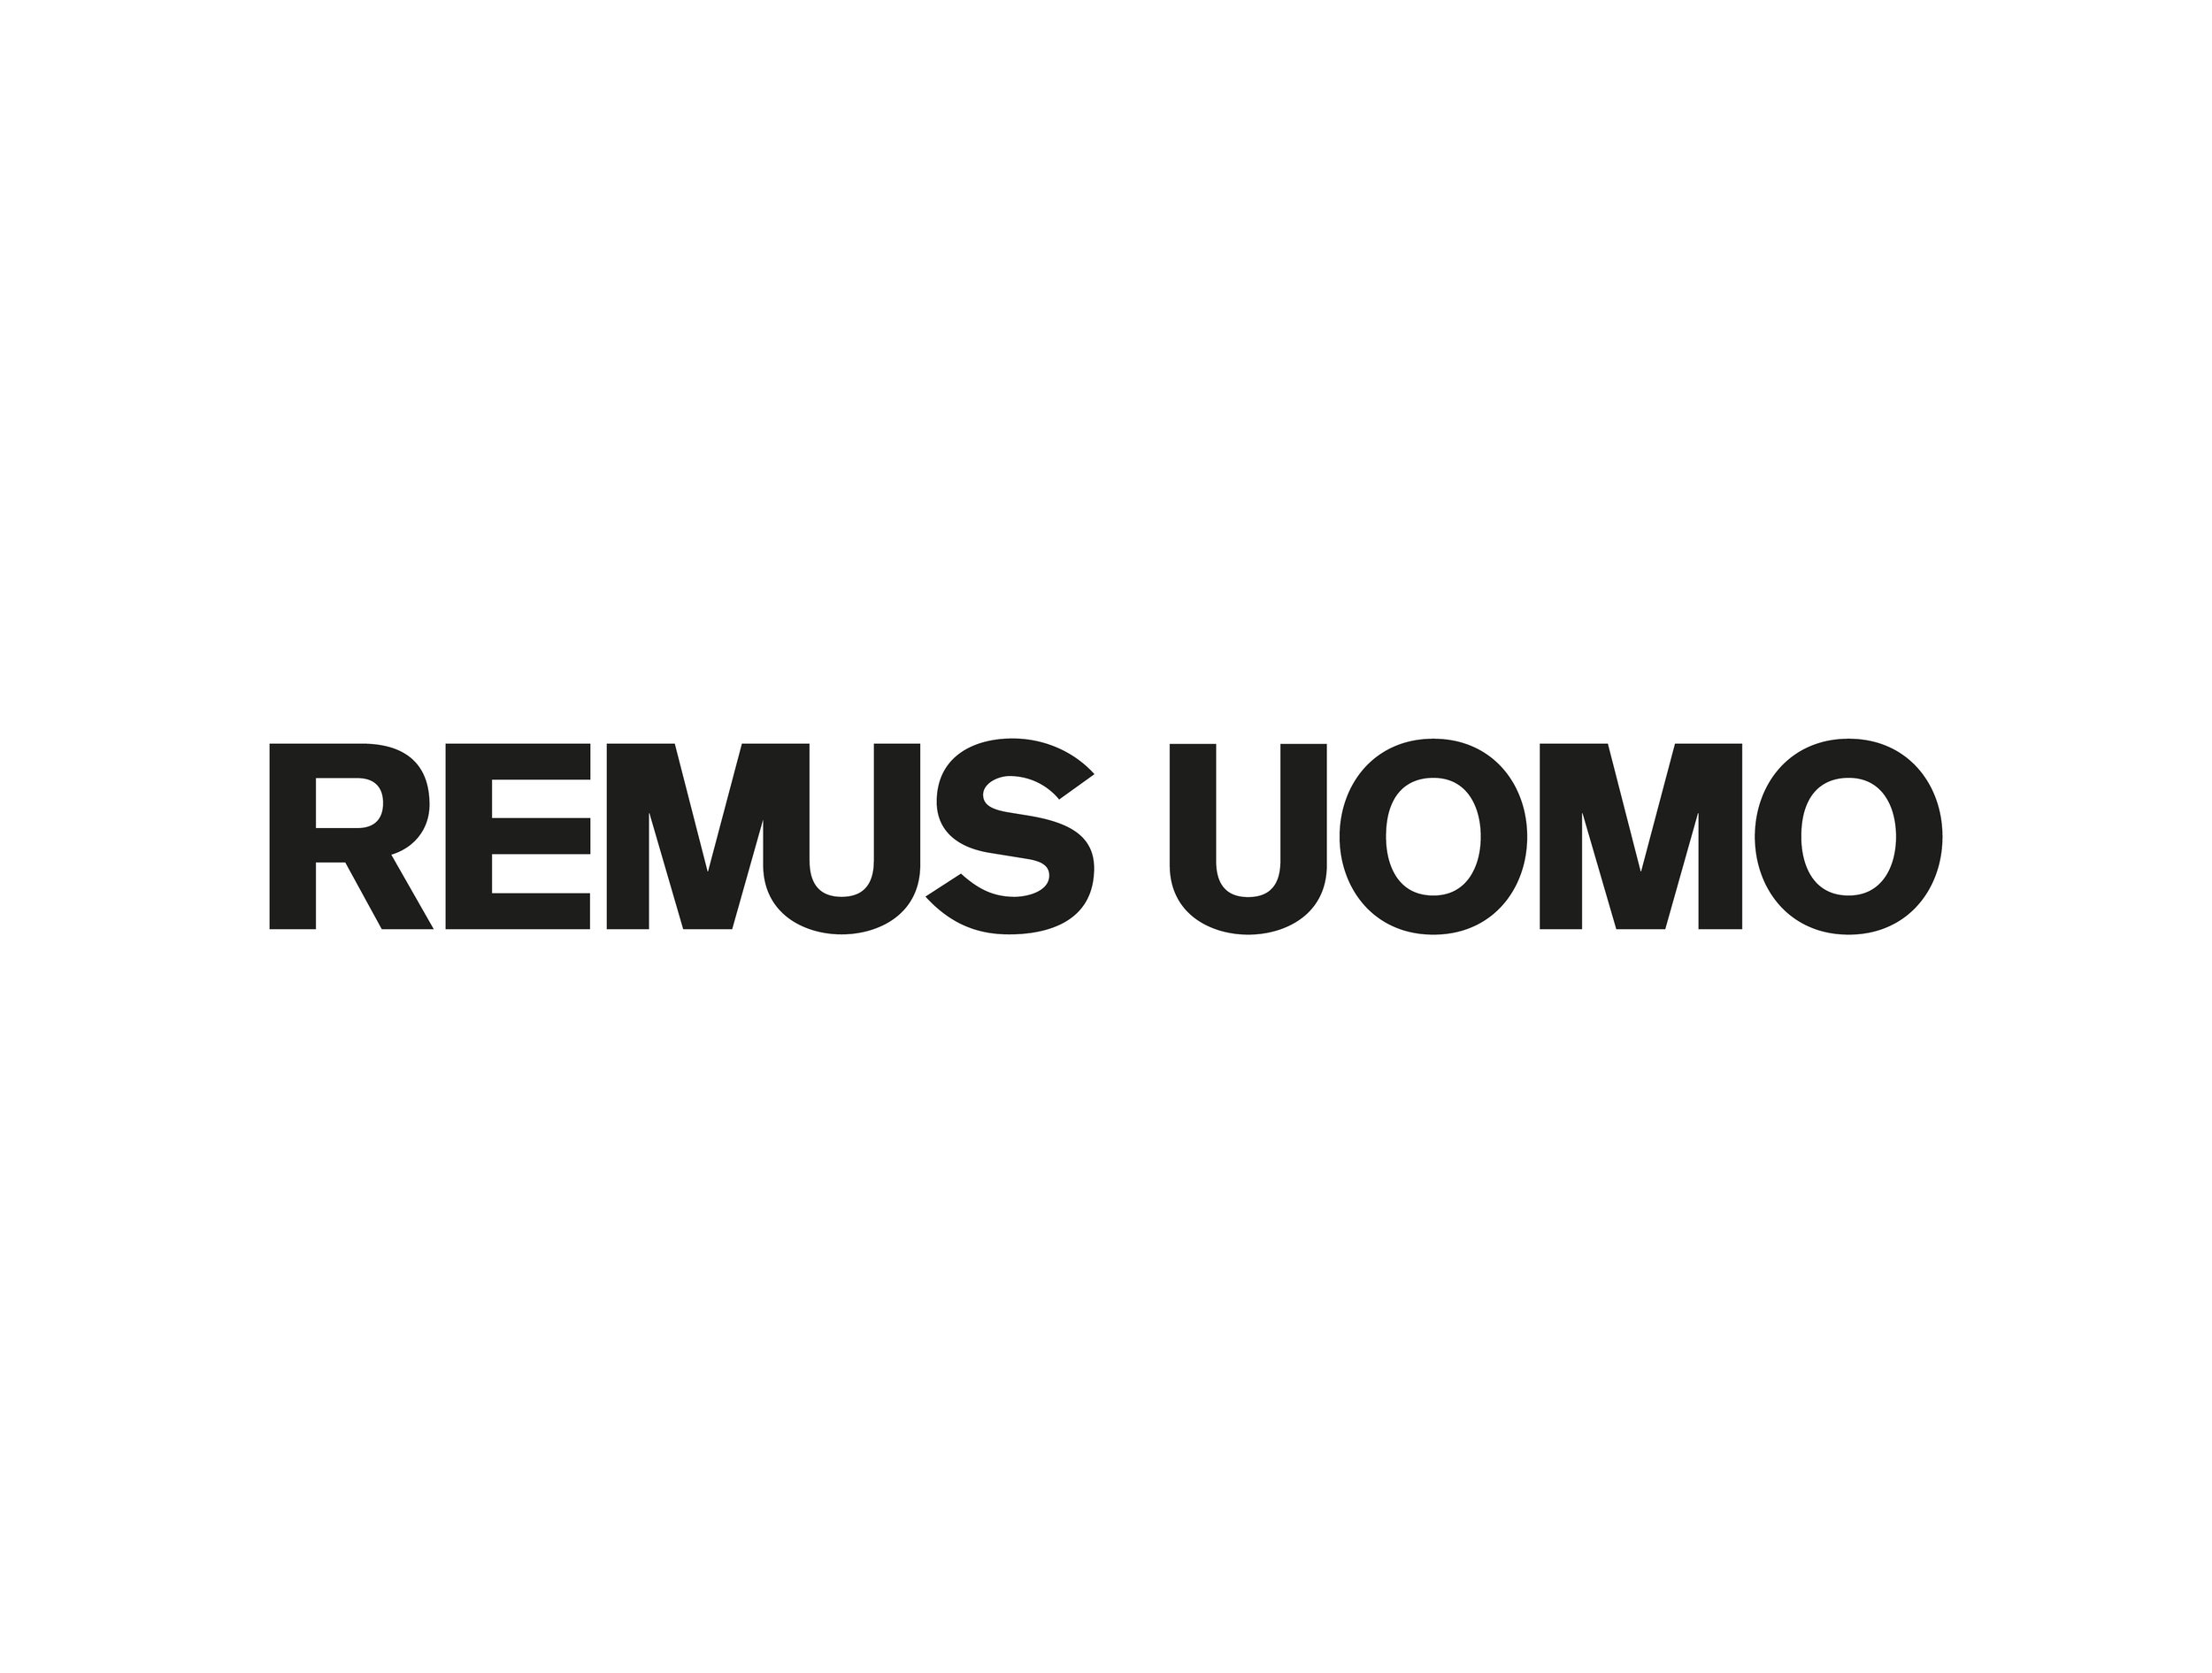 Remus Uomo Logo Band Row2 Export.jpg